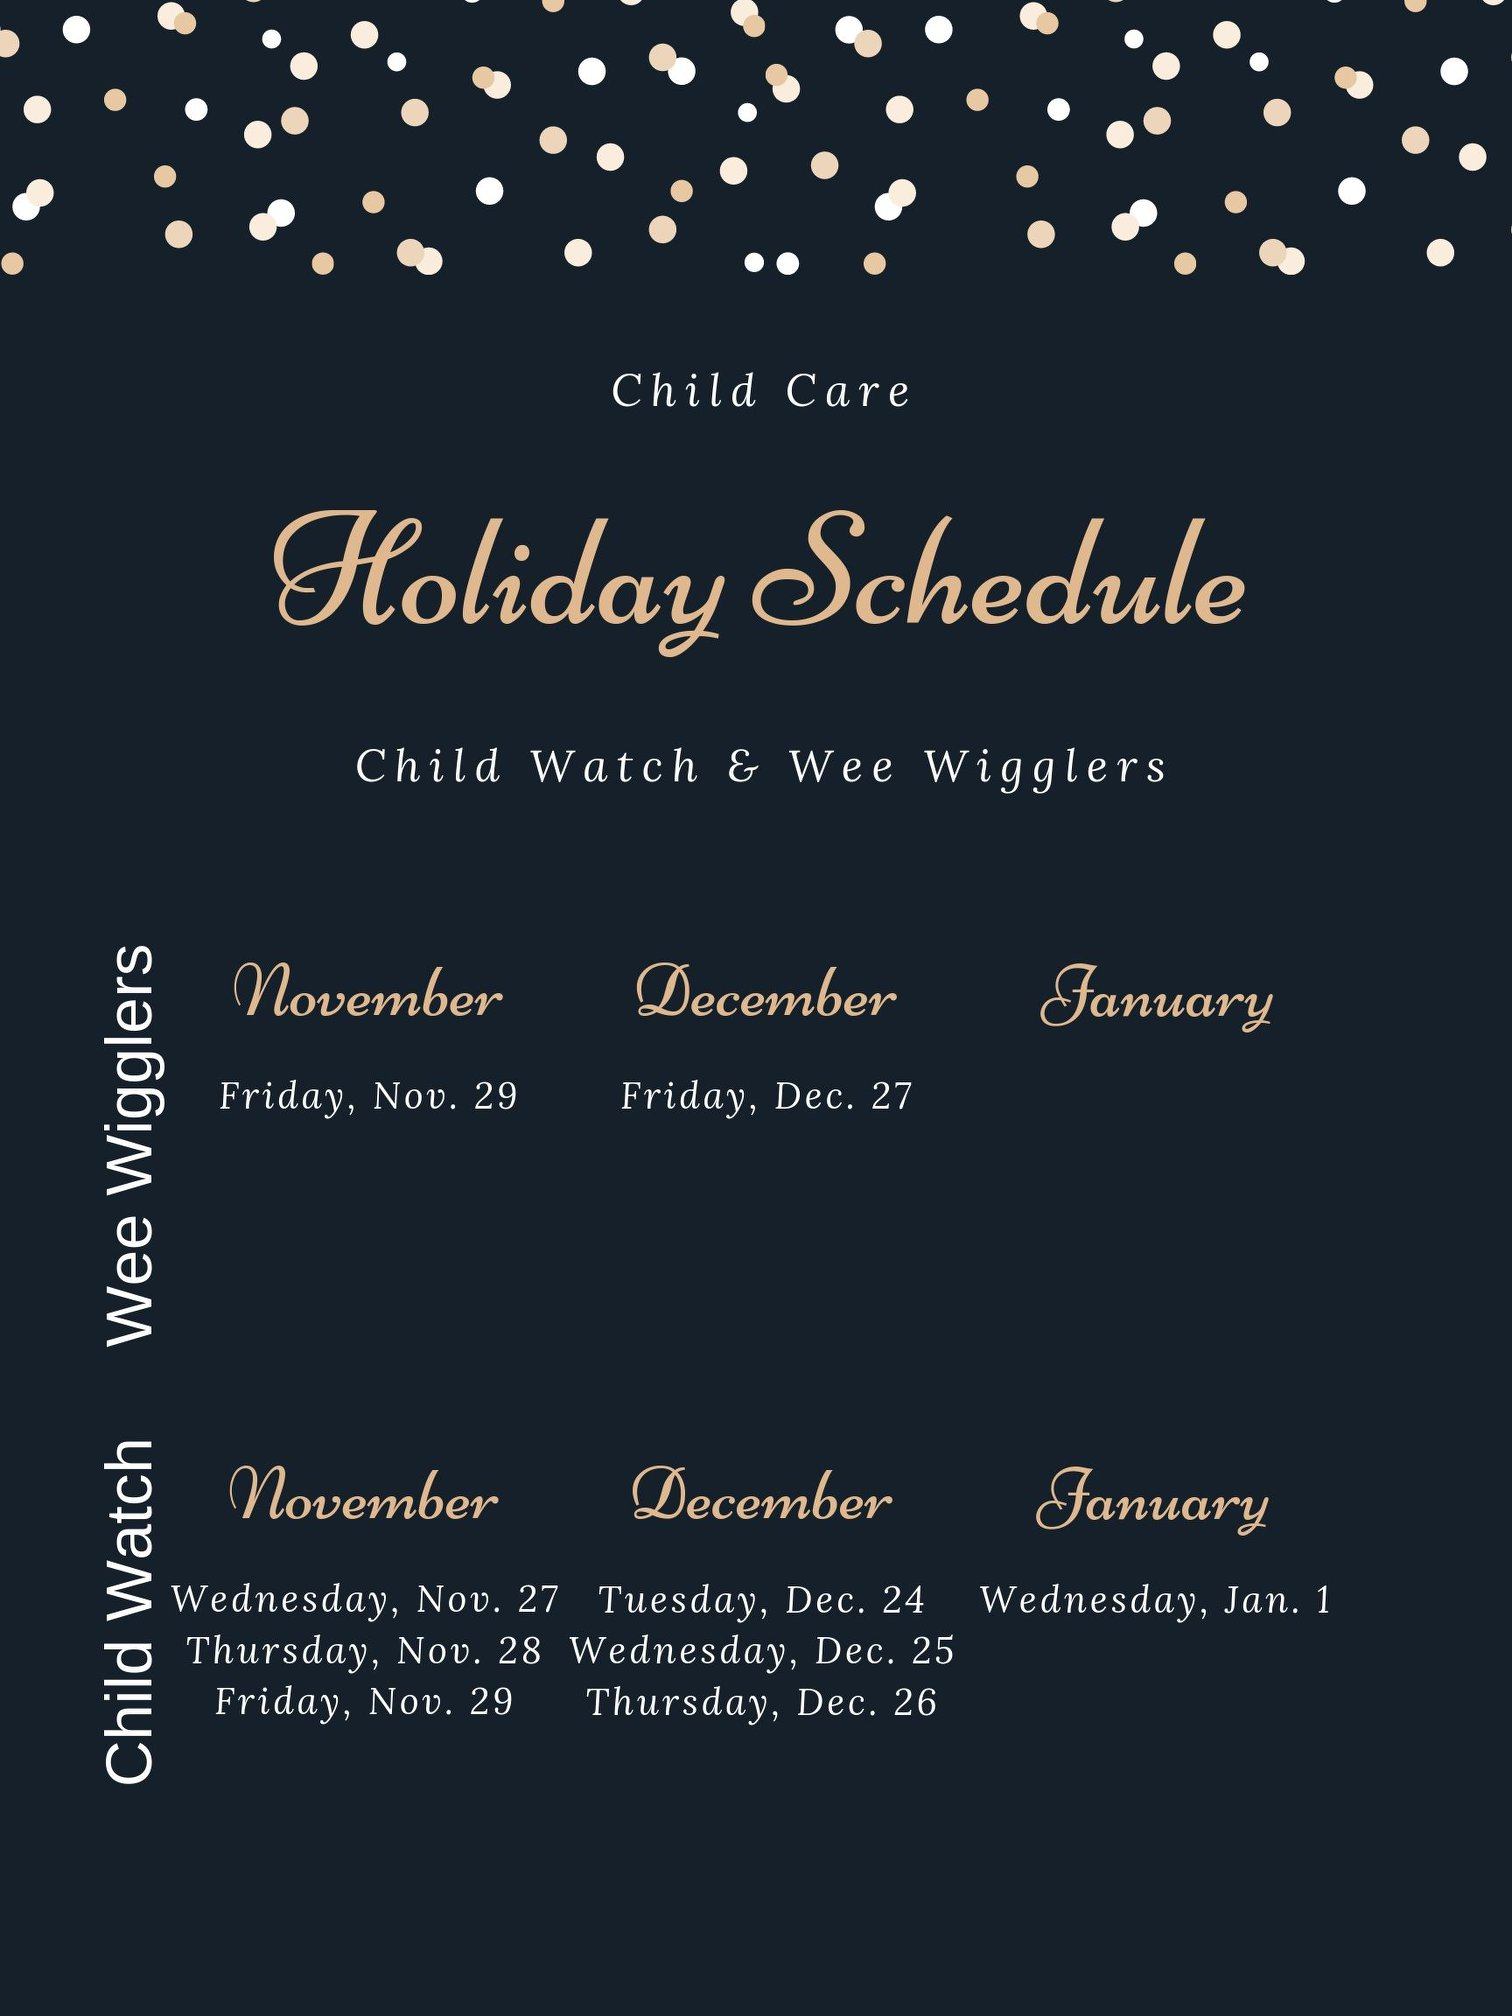 Childwatch and Wee wigglers holiday schedule 2019